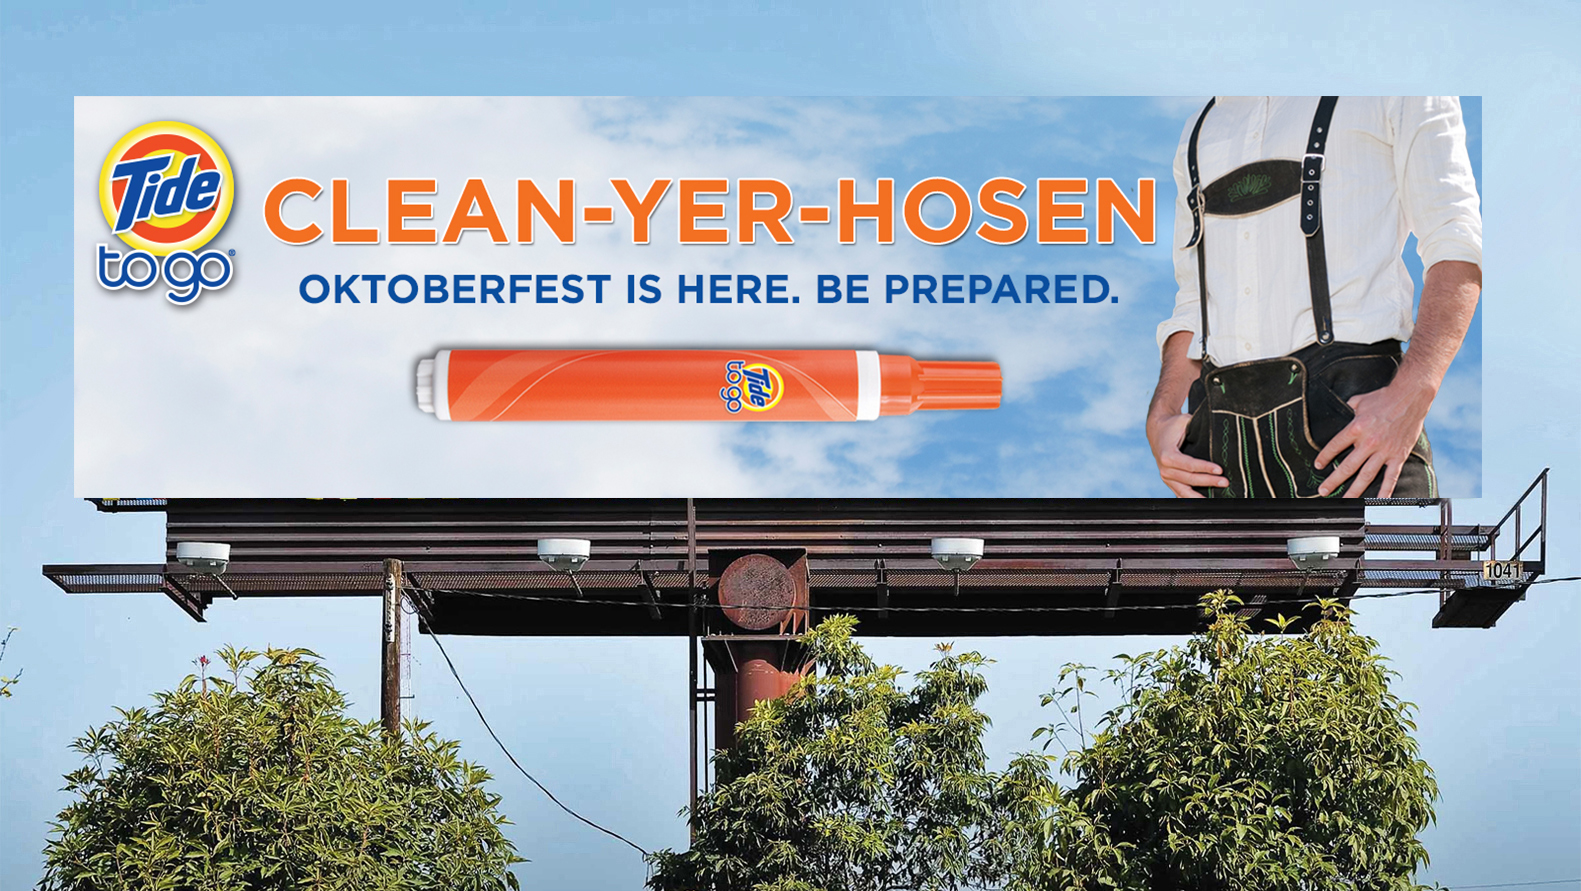 Billboard in Cincinnati - this was relevant to the Cincinnati Oktoberfest, which is the largest in the US.